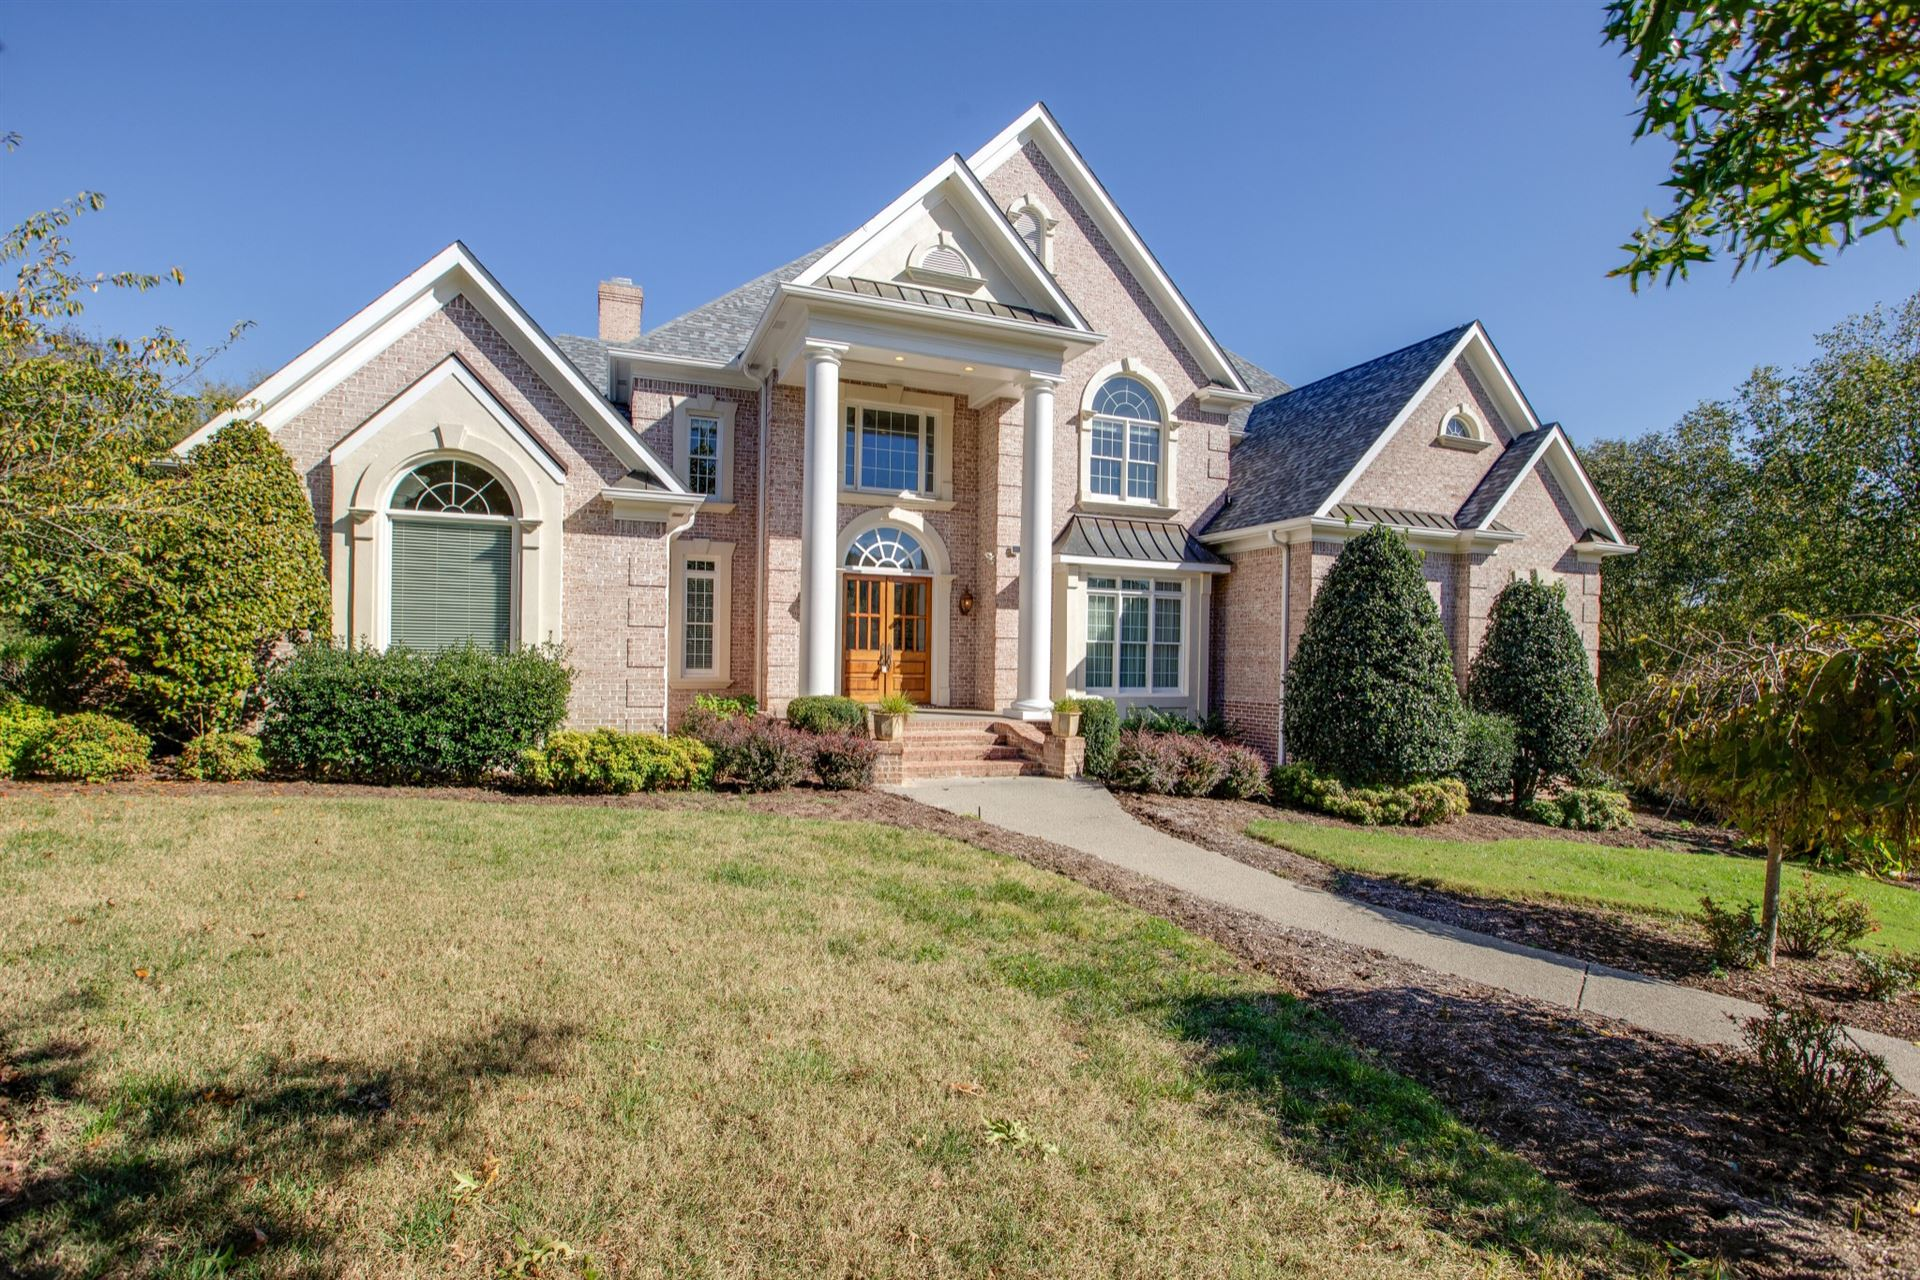 Photo of 389 Lake Valley Dr, Franklin, TN 37069 (MLS # 2199562)